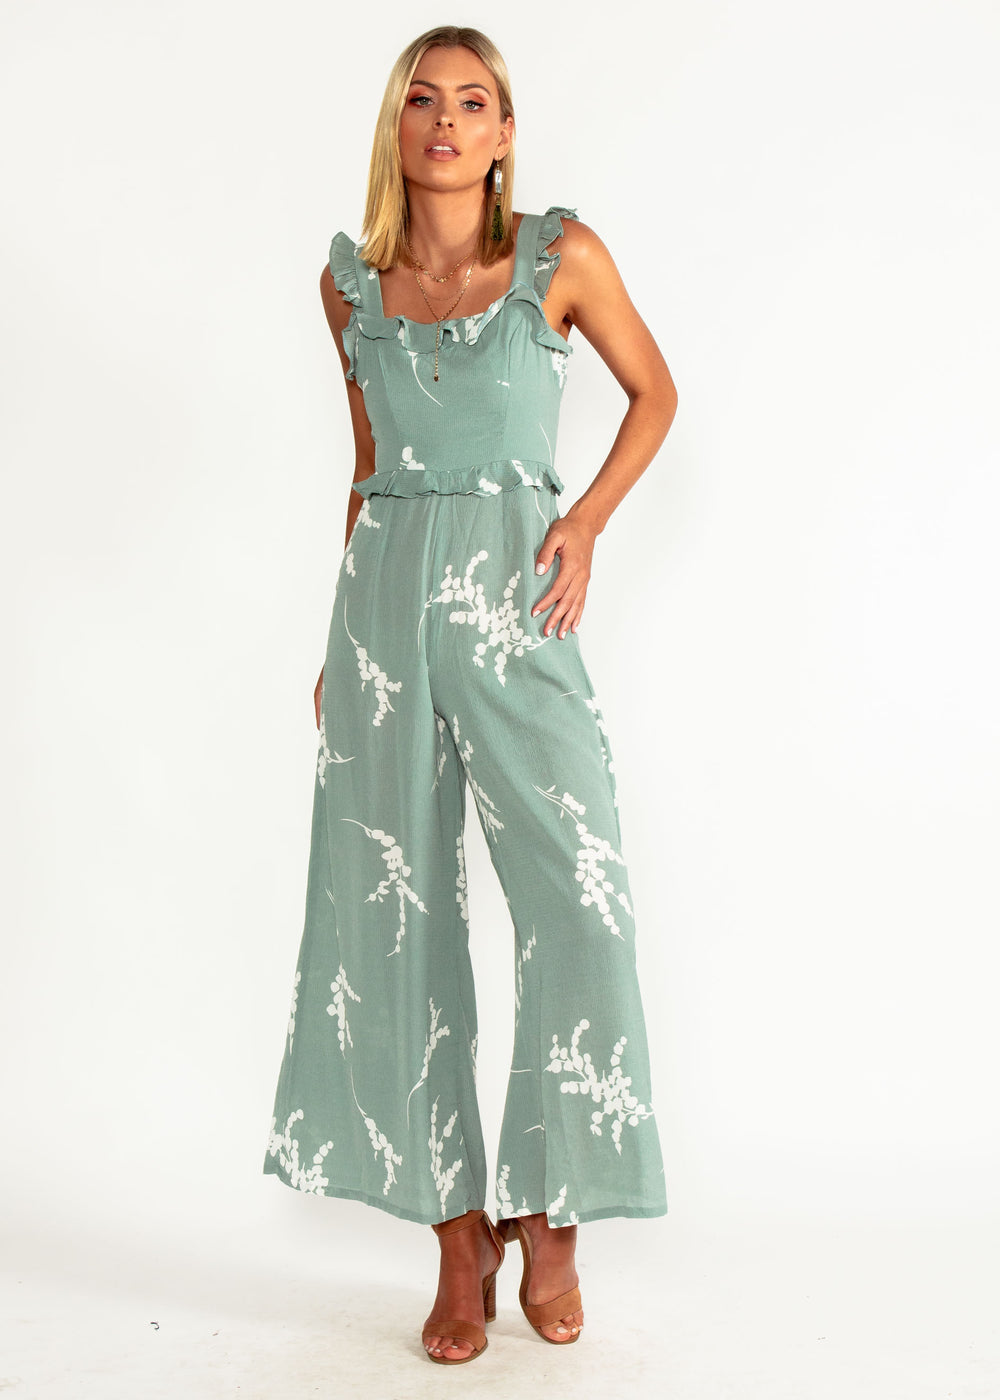 Style Update Pantsuit - Sage Floral